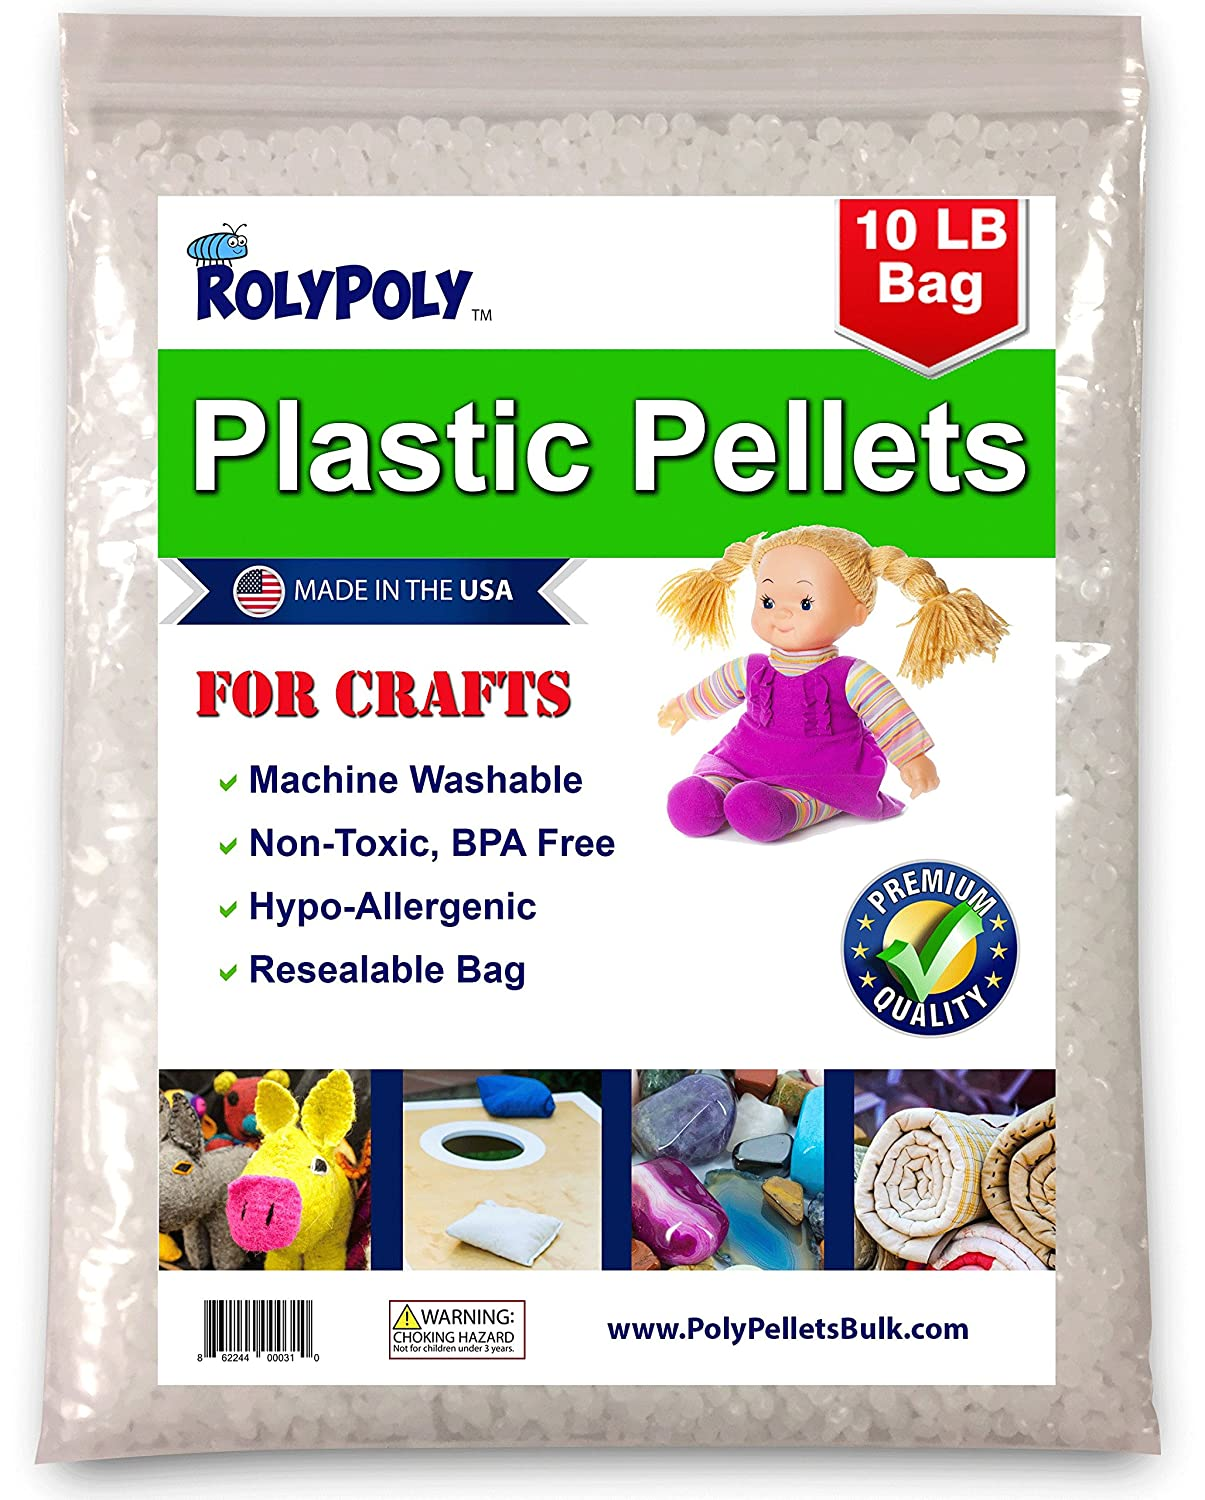 Plastic Pellets in Resealable Bag (10 LBS) for Weighted Blankets, Dolls/Toys, Lap Pads, Cornhole Bags, Bean Bags, I-Spy Bags, Rock Tumbler, Rifle Bags, Non Toxic, Machine Washable Craft Pellets Marktiva 4337013696